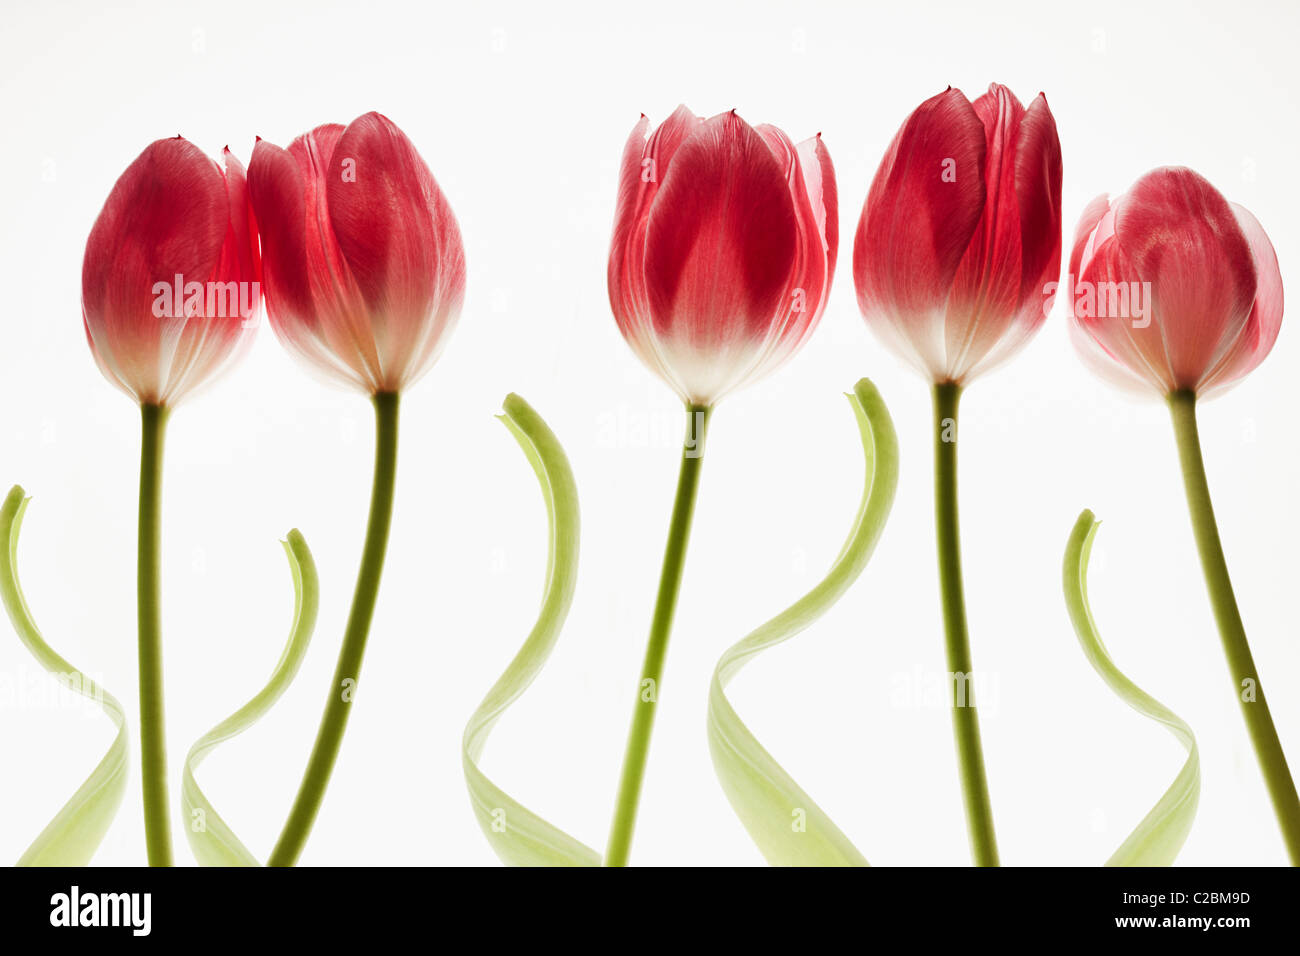 Cinq tulipes rouges sur fond blanc Photo Stock